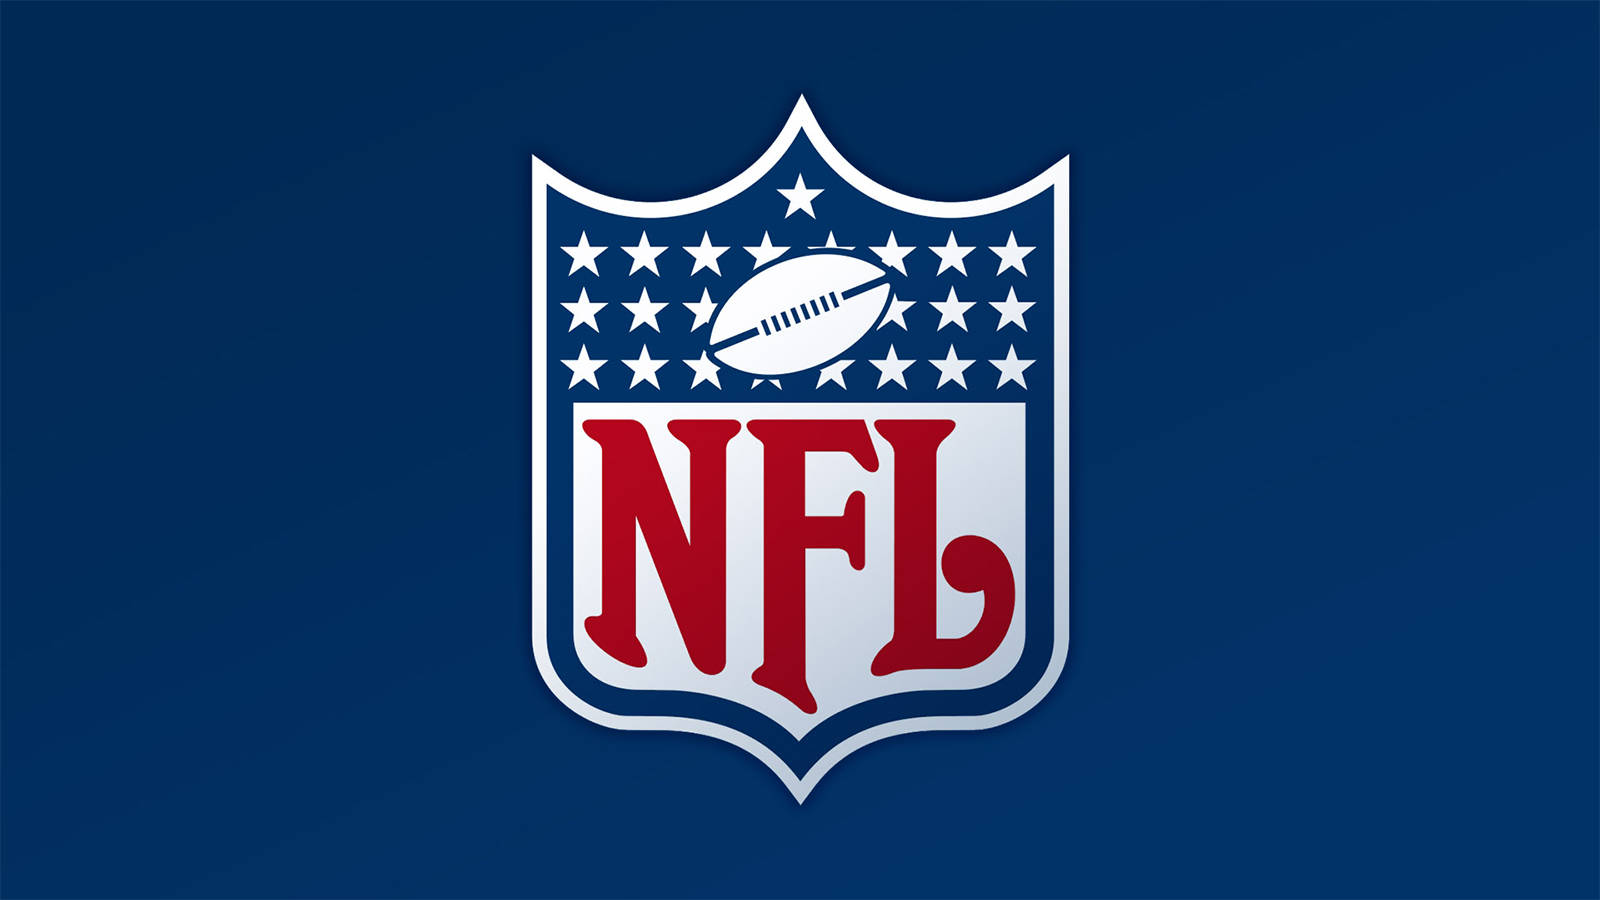 How to Watch NFL on Kodi - Top Recommendations For NFL Kodi